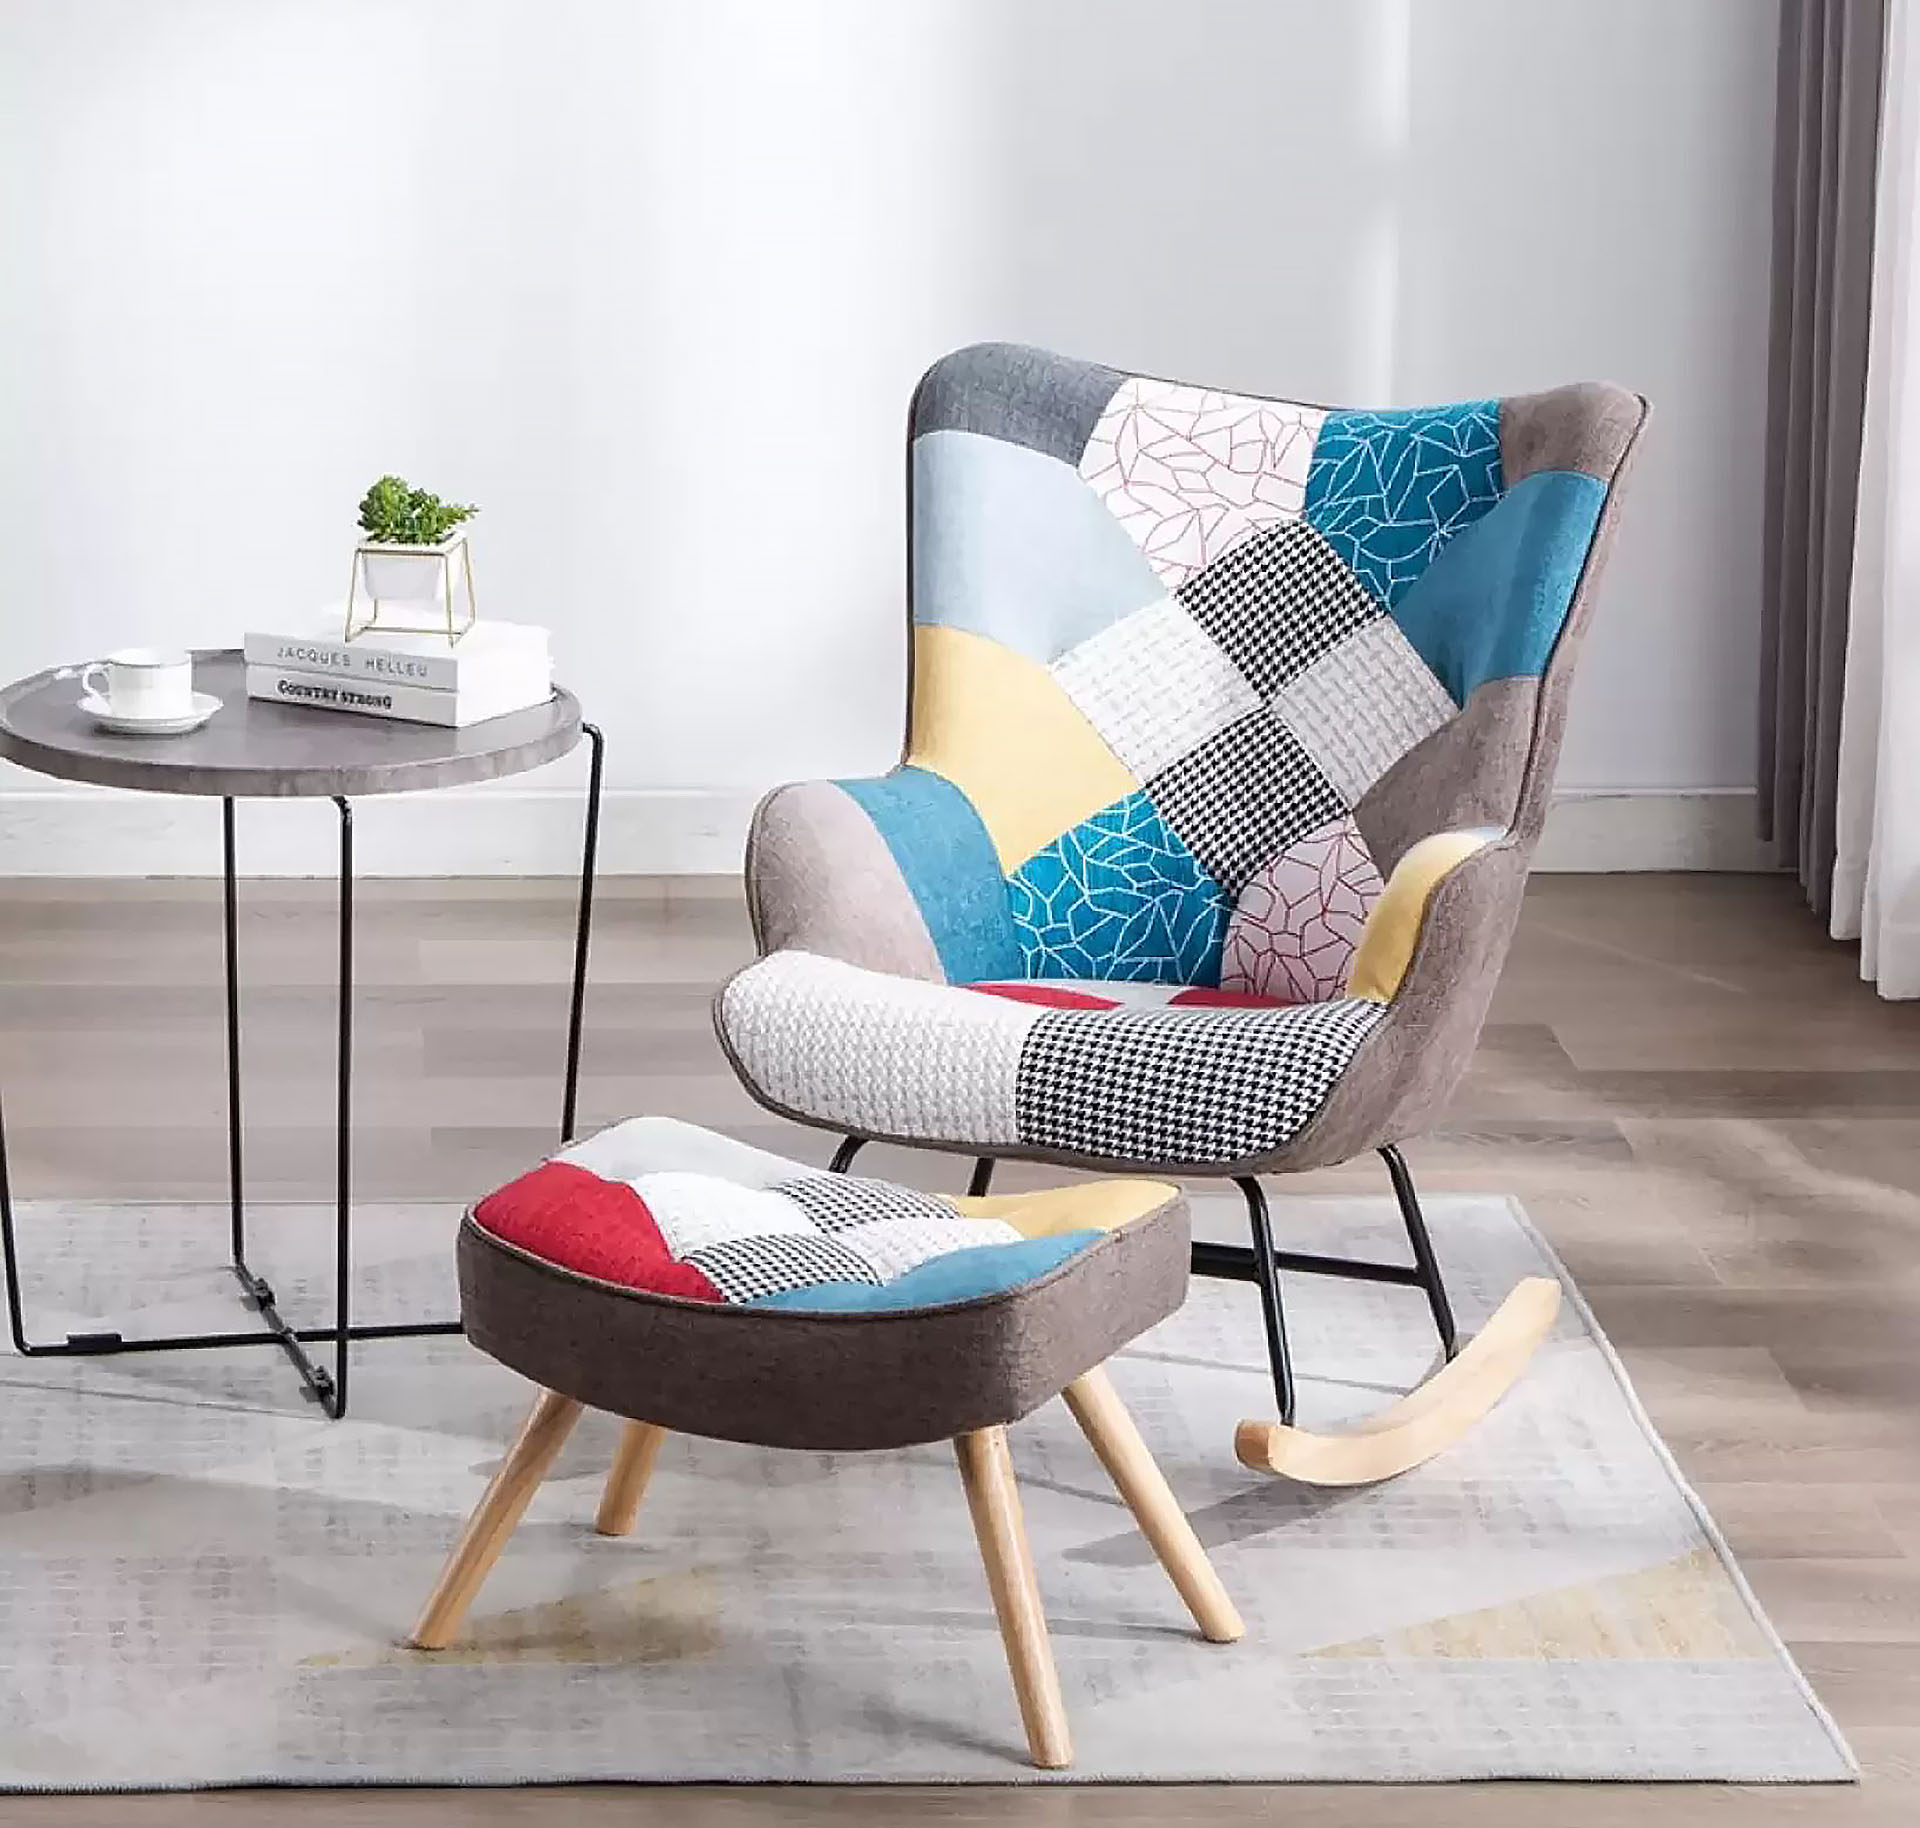 Vintage-inspired armchair made with patchwork upholstery used in Retro style interior